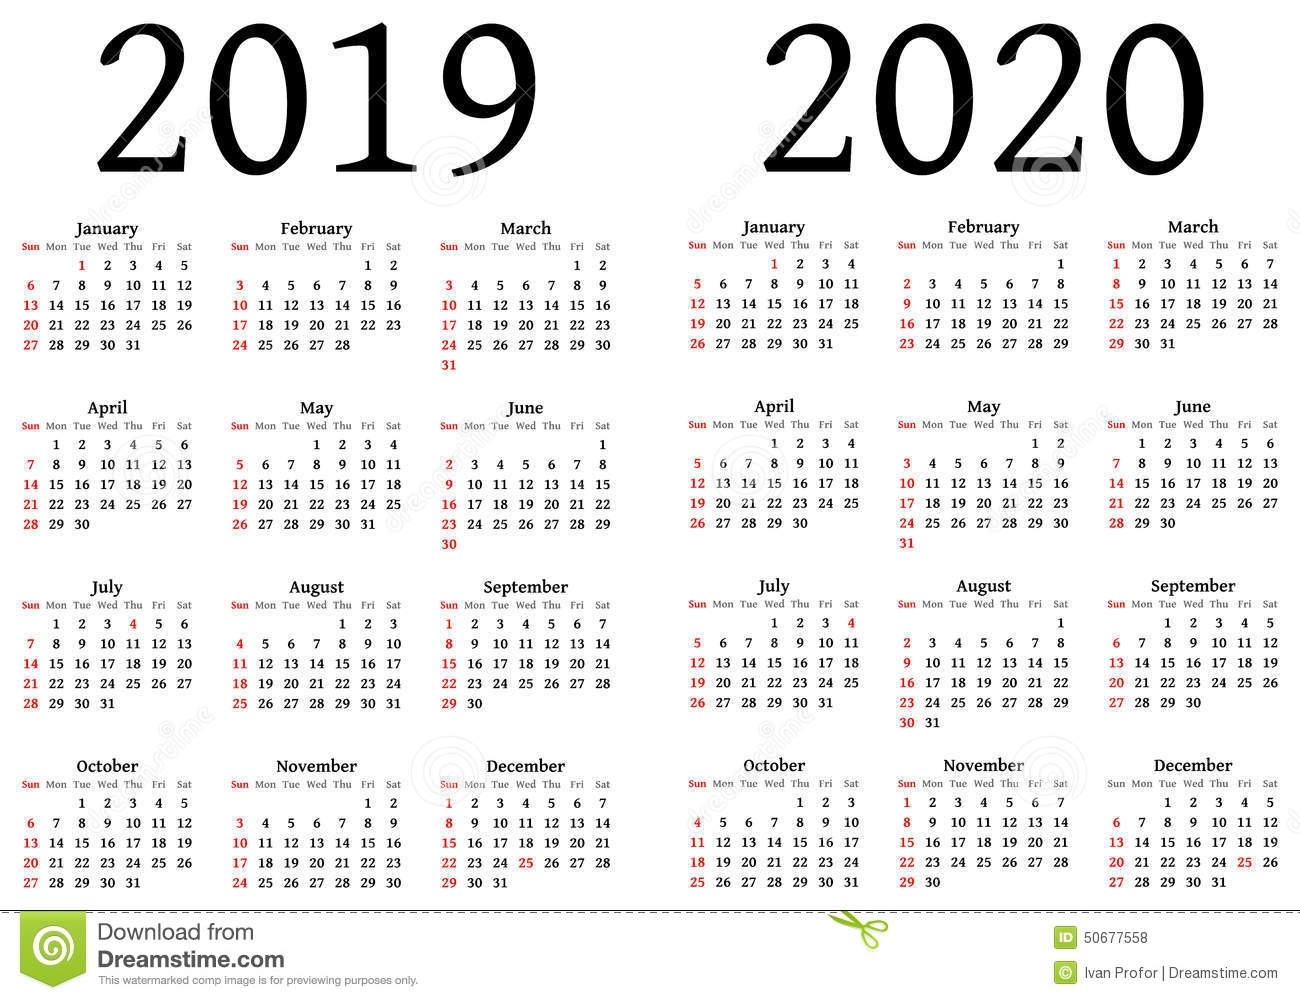 Calendar For 2019 And 2020 Stock Vector. Illustration Of Designers intended for U Of T 2019 2020 Calendar